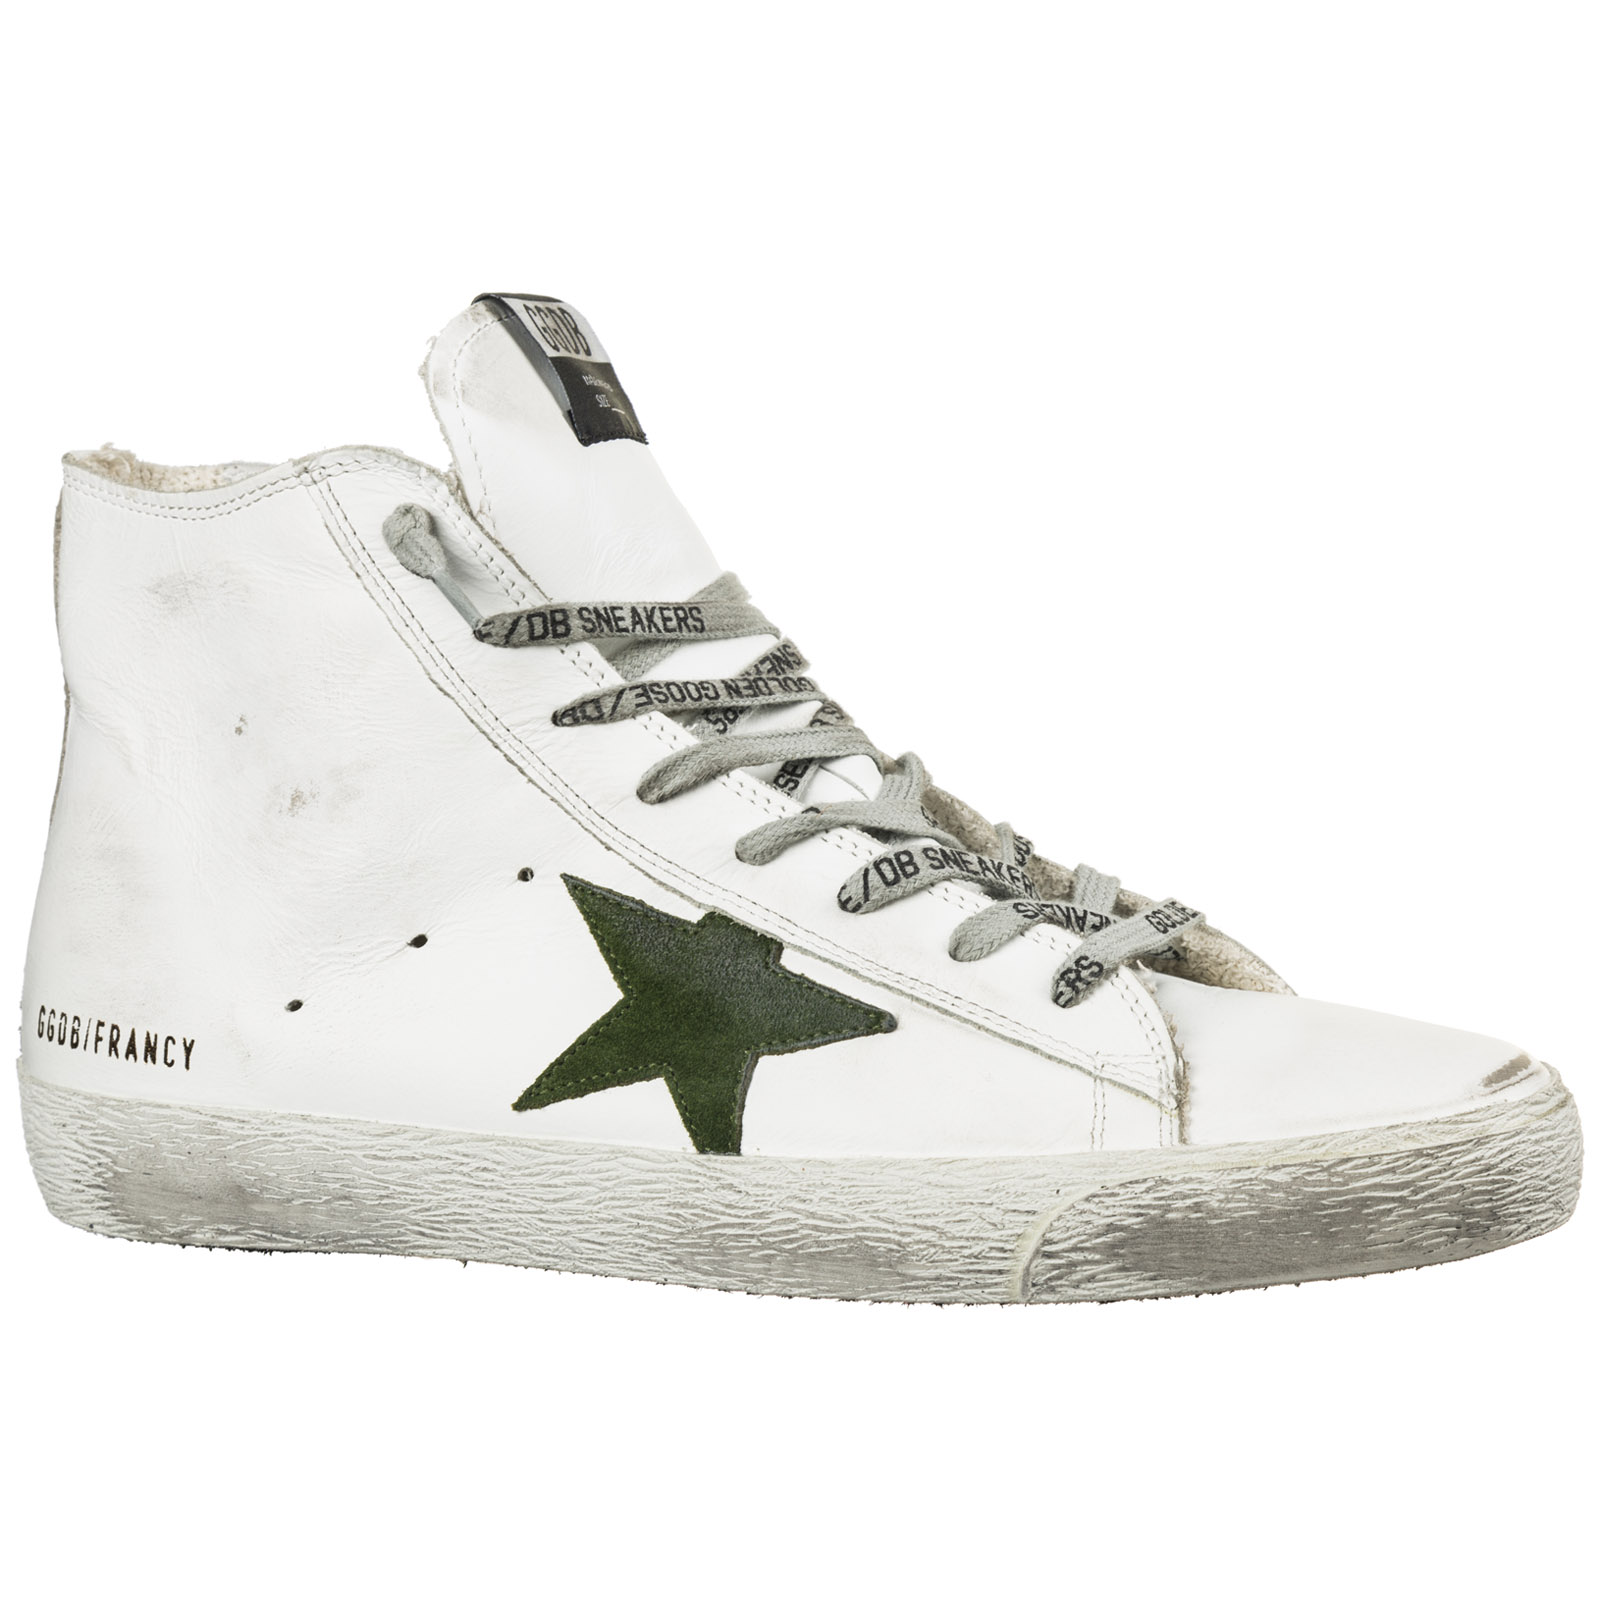 Golden Goose Men s shoes high top leather trainers sneakers francy 4430c4bcc75